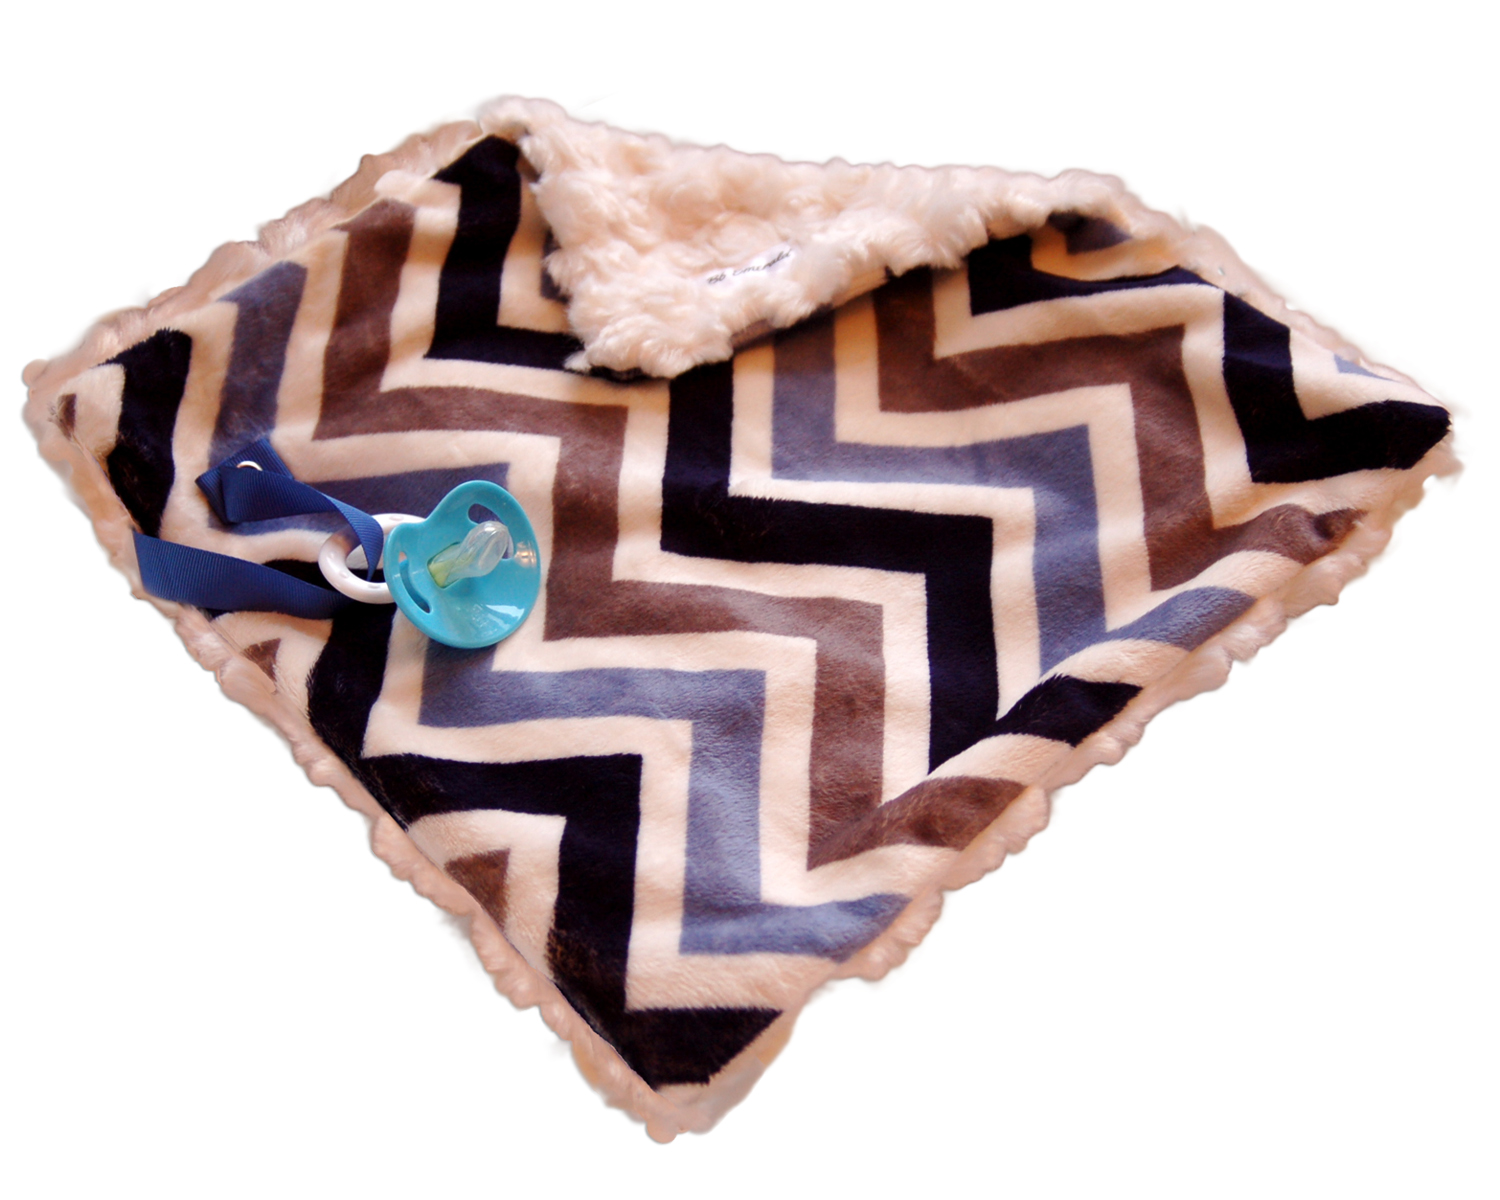 BbEmerald Indoor Outdoor Travel Comfort Safety Newborn Infant Child Soft Baby Blue Chevron Minky Pacifier Blanket at Sears.com